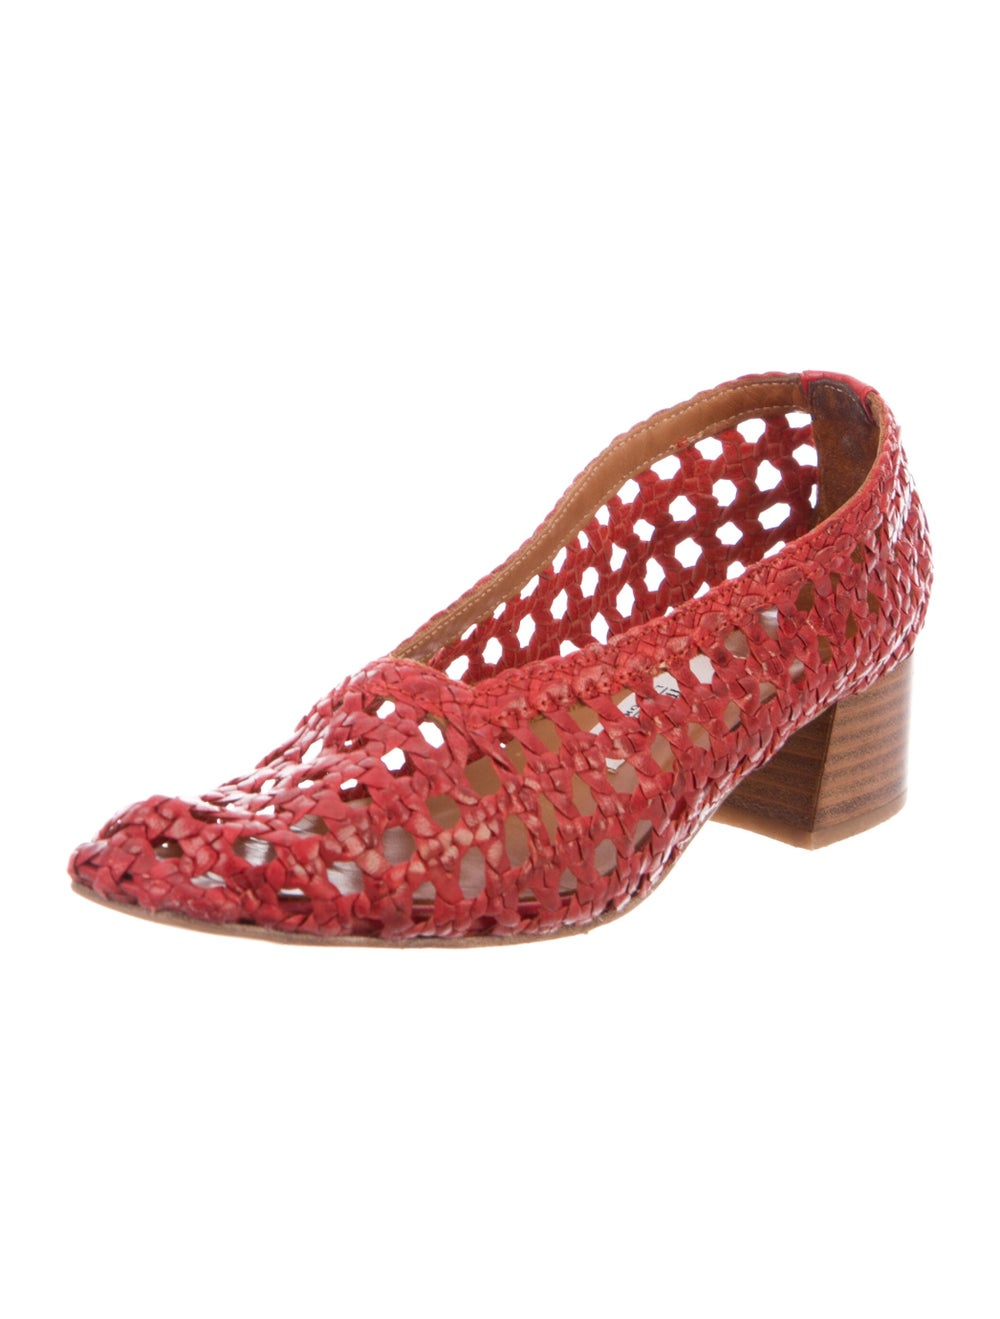 Miista Leather Flats Red - image 2